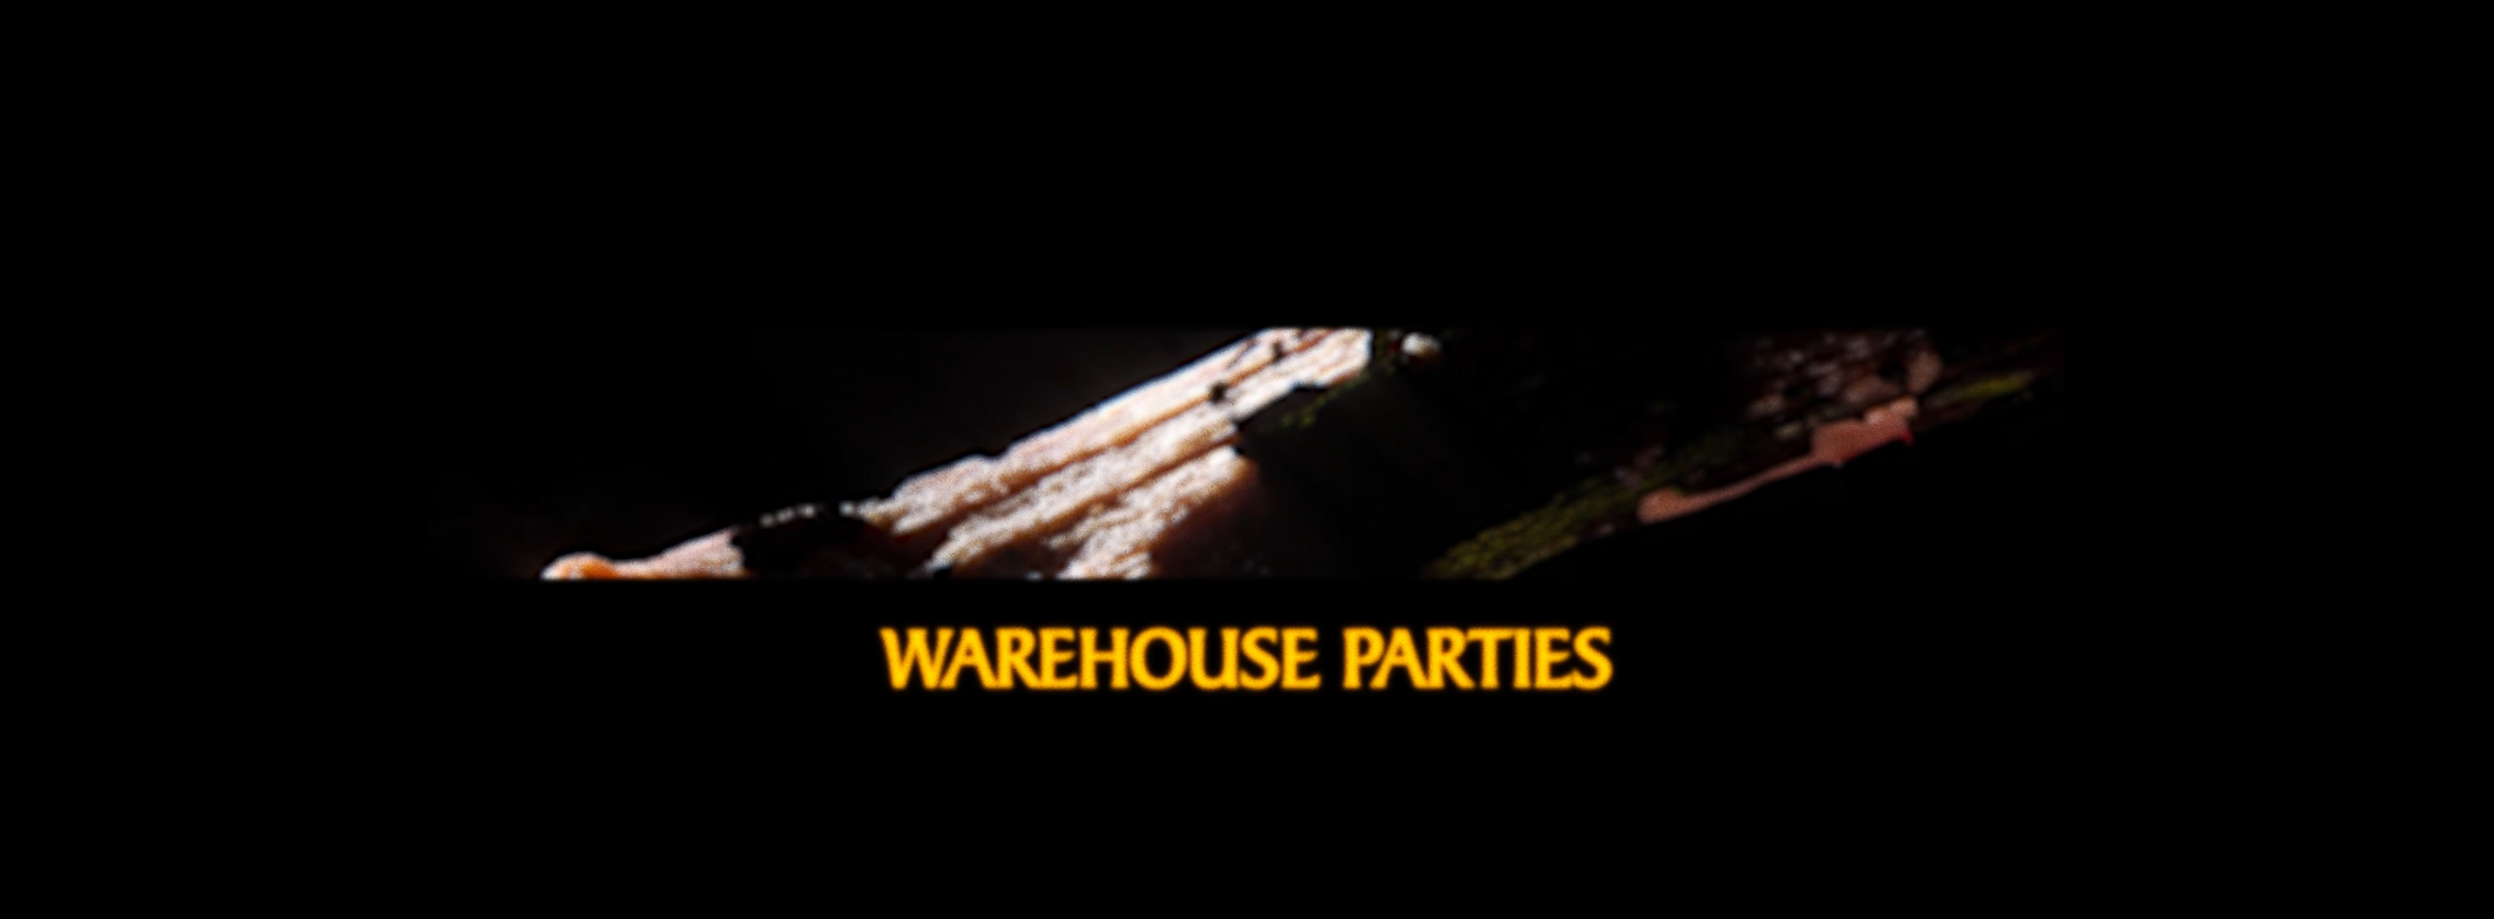 warehouse parties.PNG